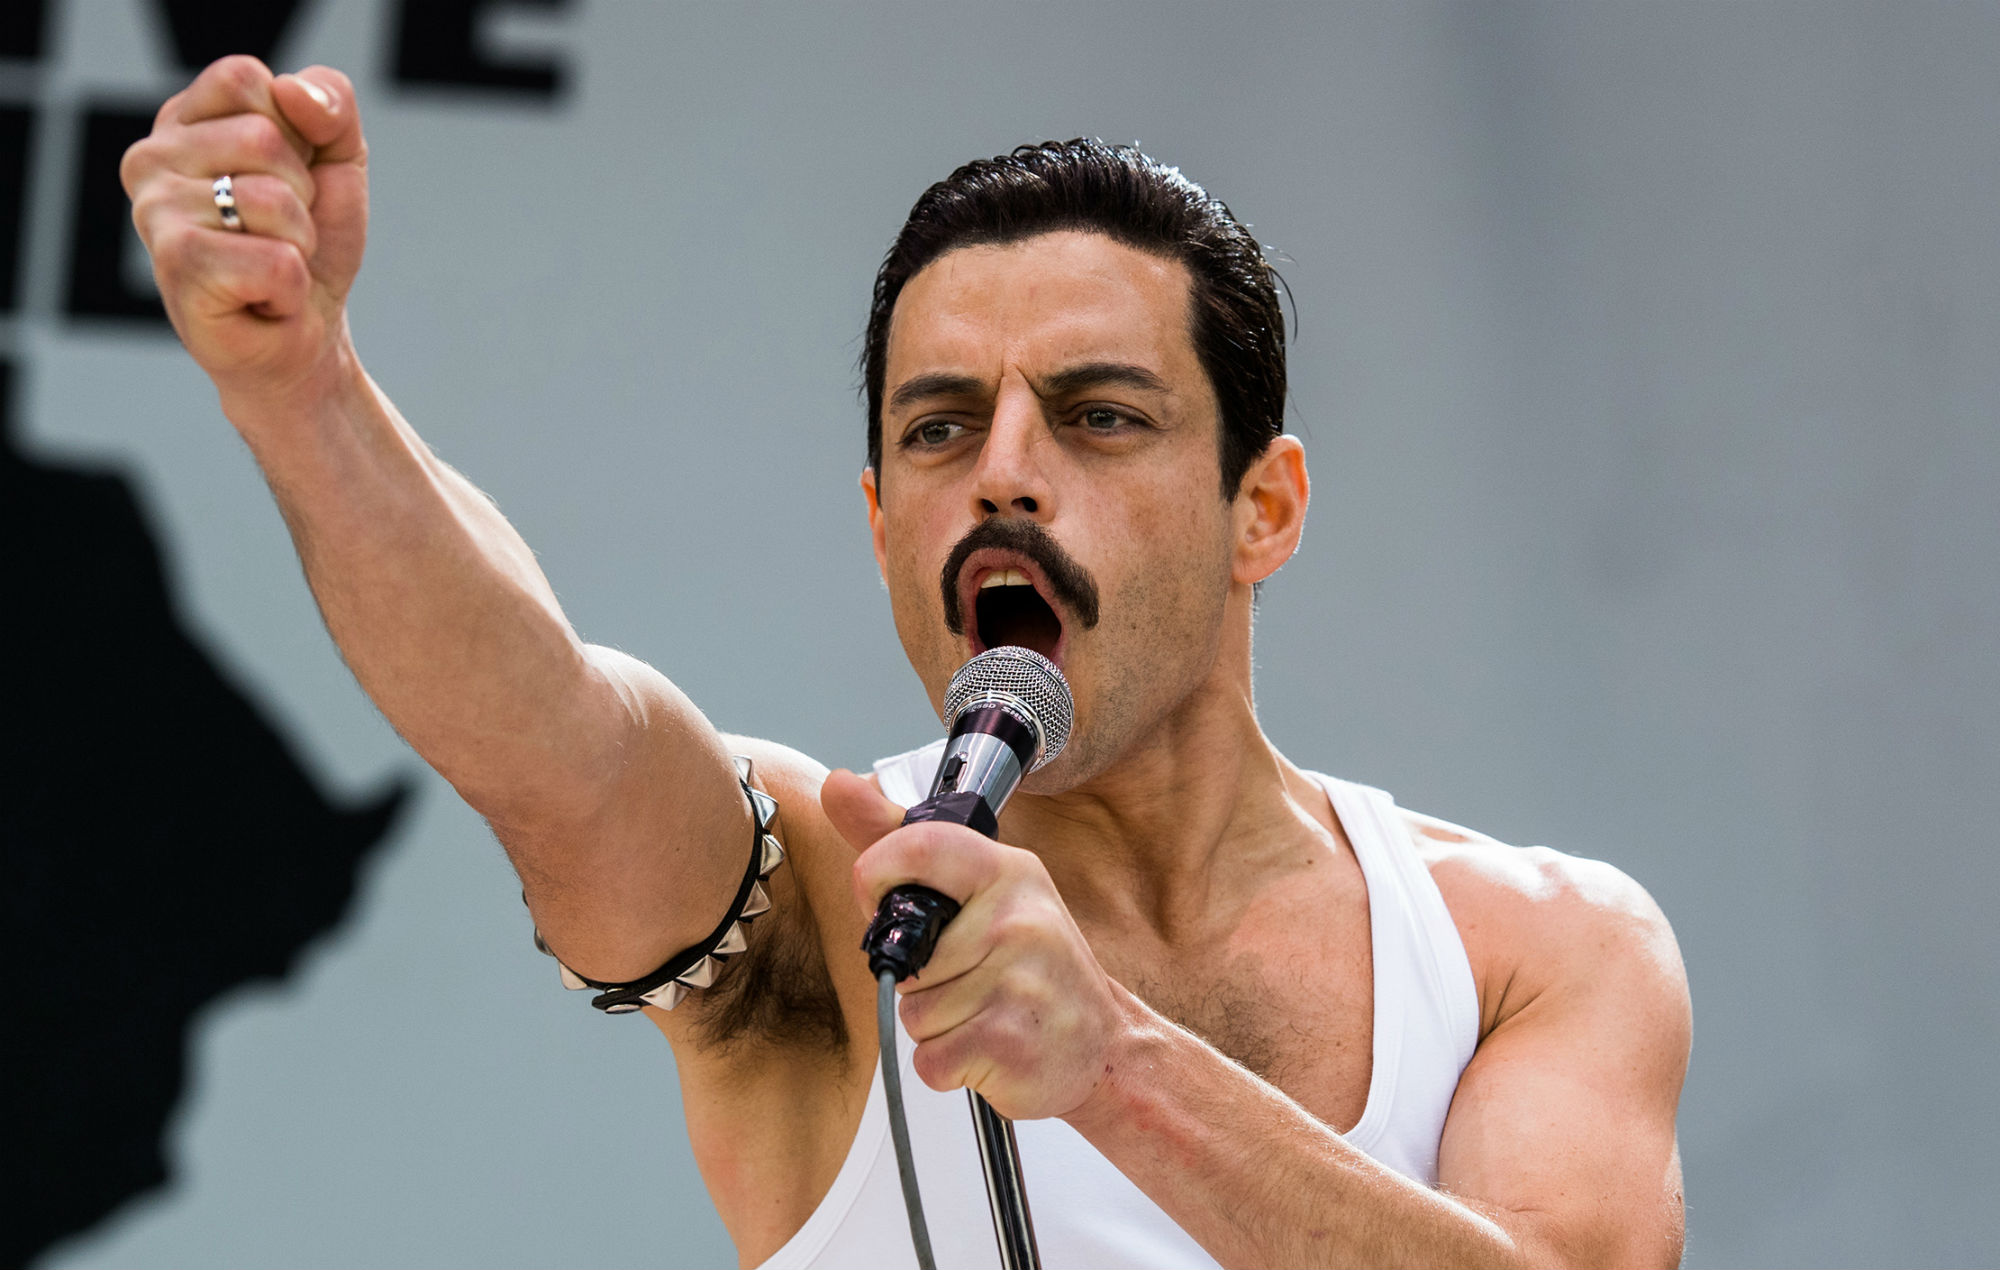 Bohemian Rhapsody Sing A Long Experience Launched In